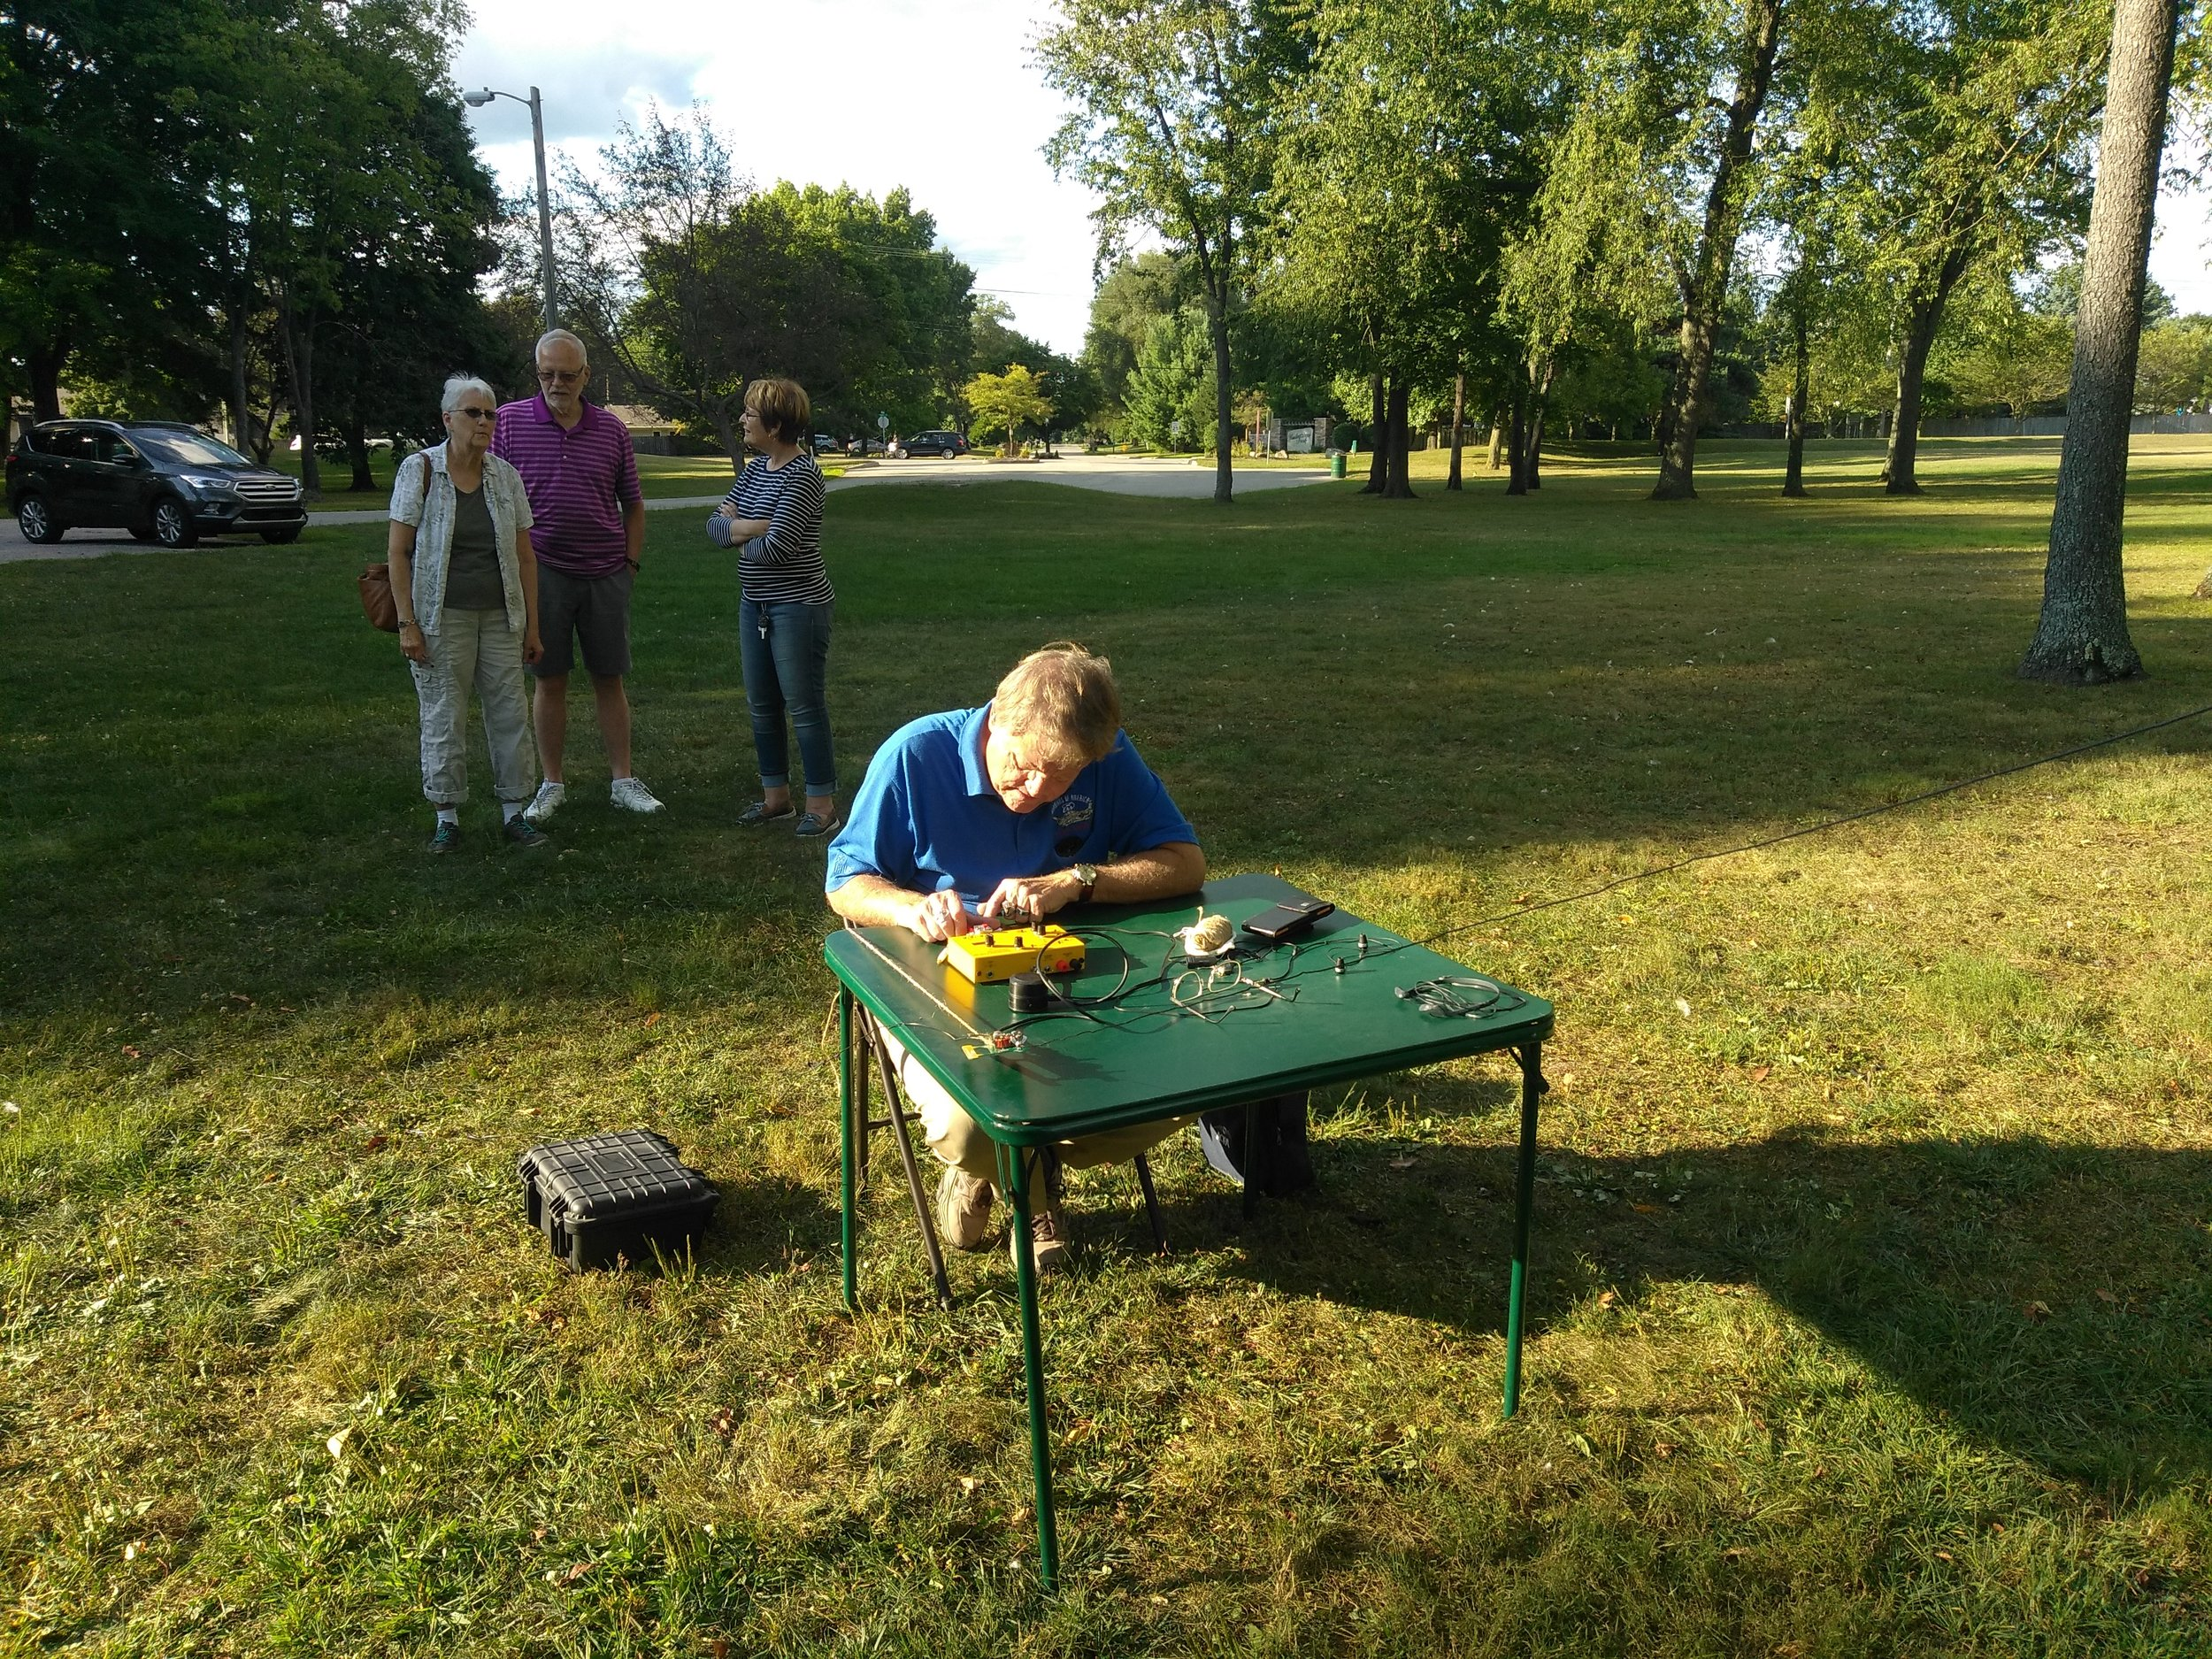 Keith Wishmeier WA9S operating 40 meter QRP, wife Mary in background with Hal Brucseke KA9LAW and wife Bonnie.